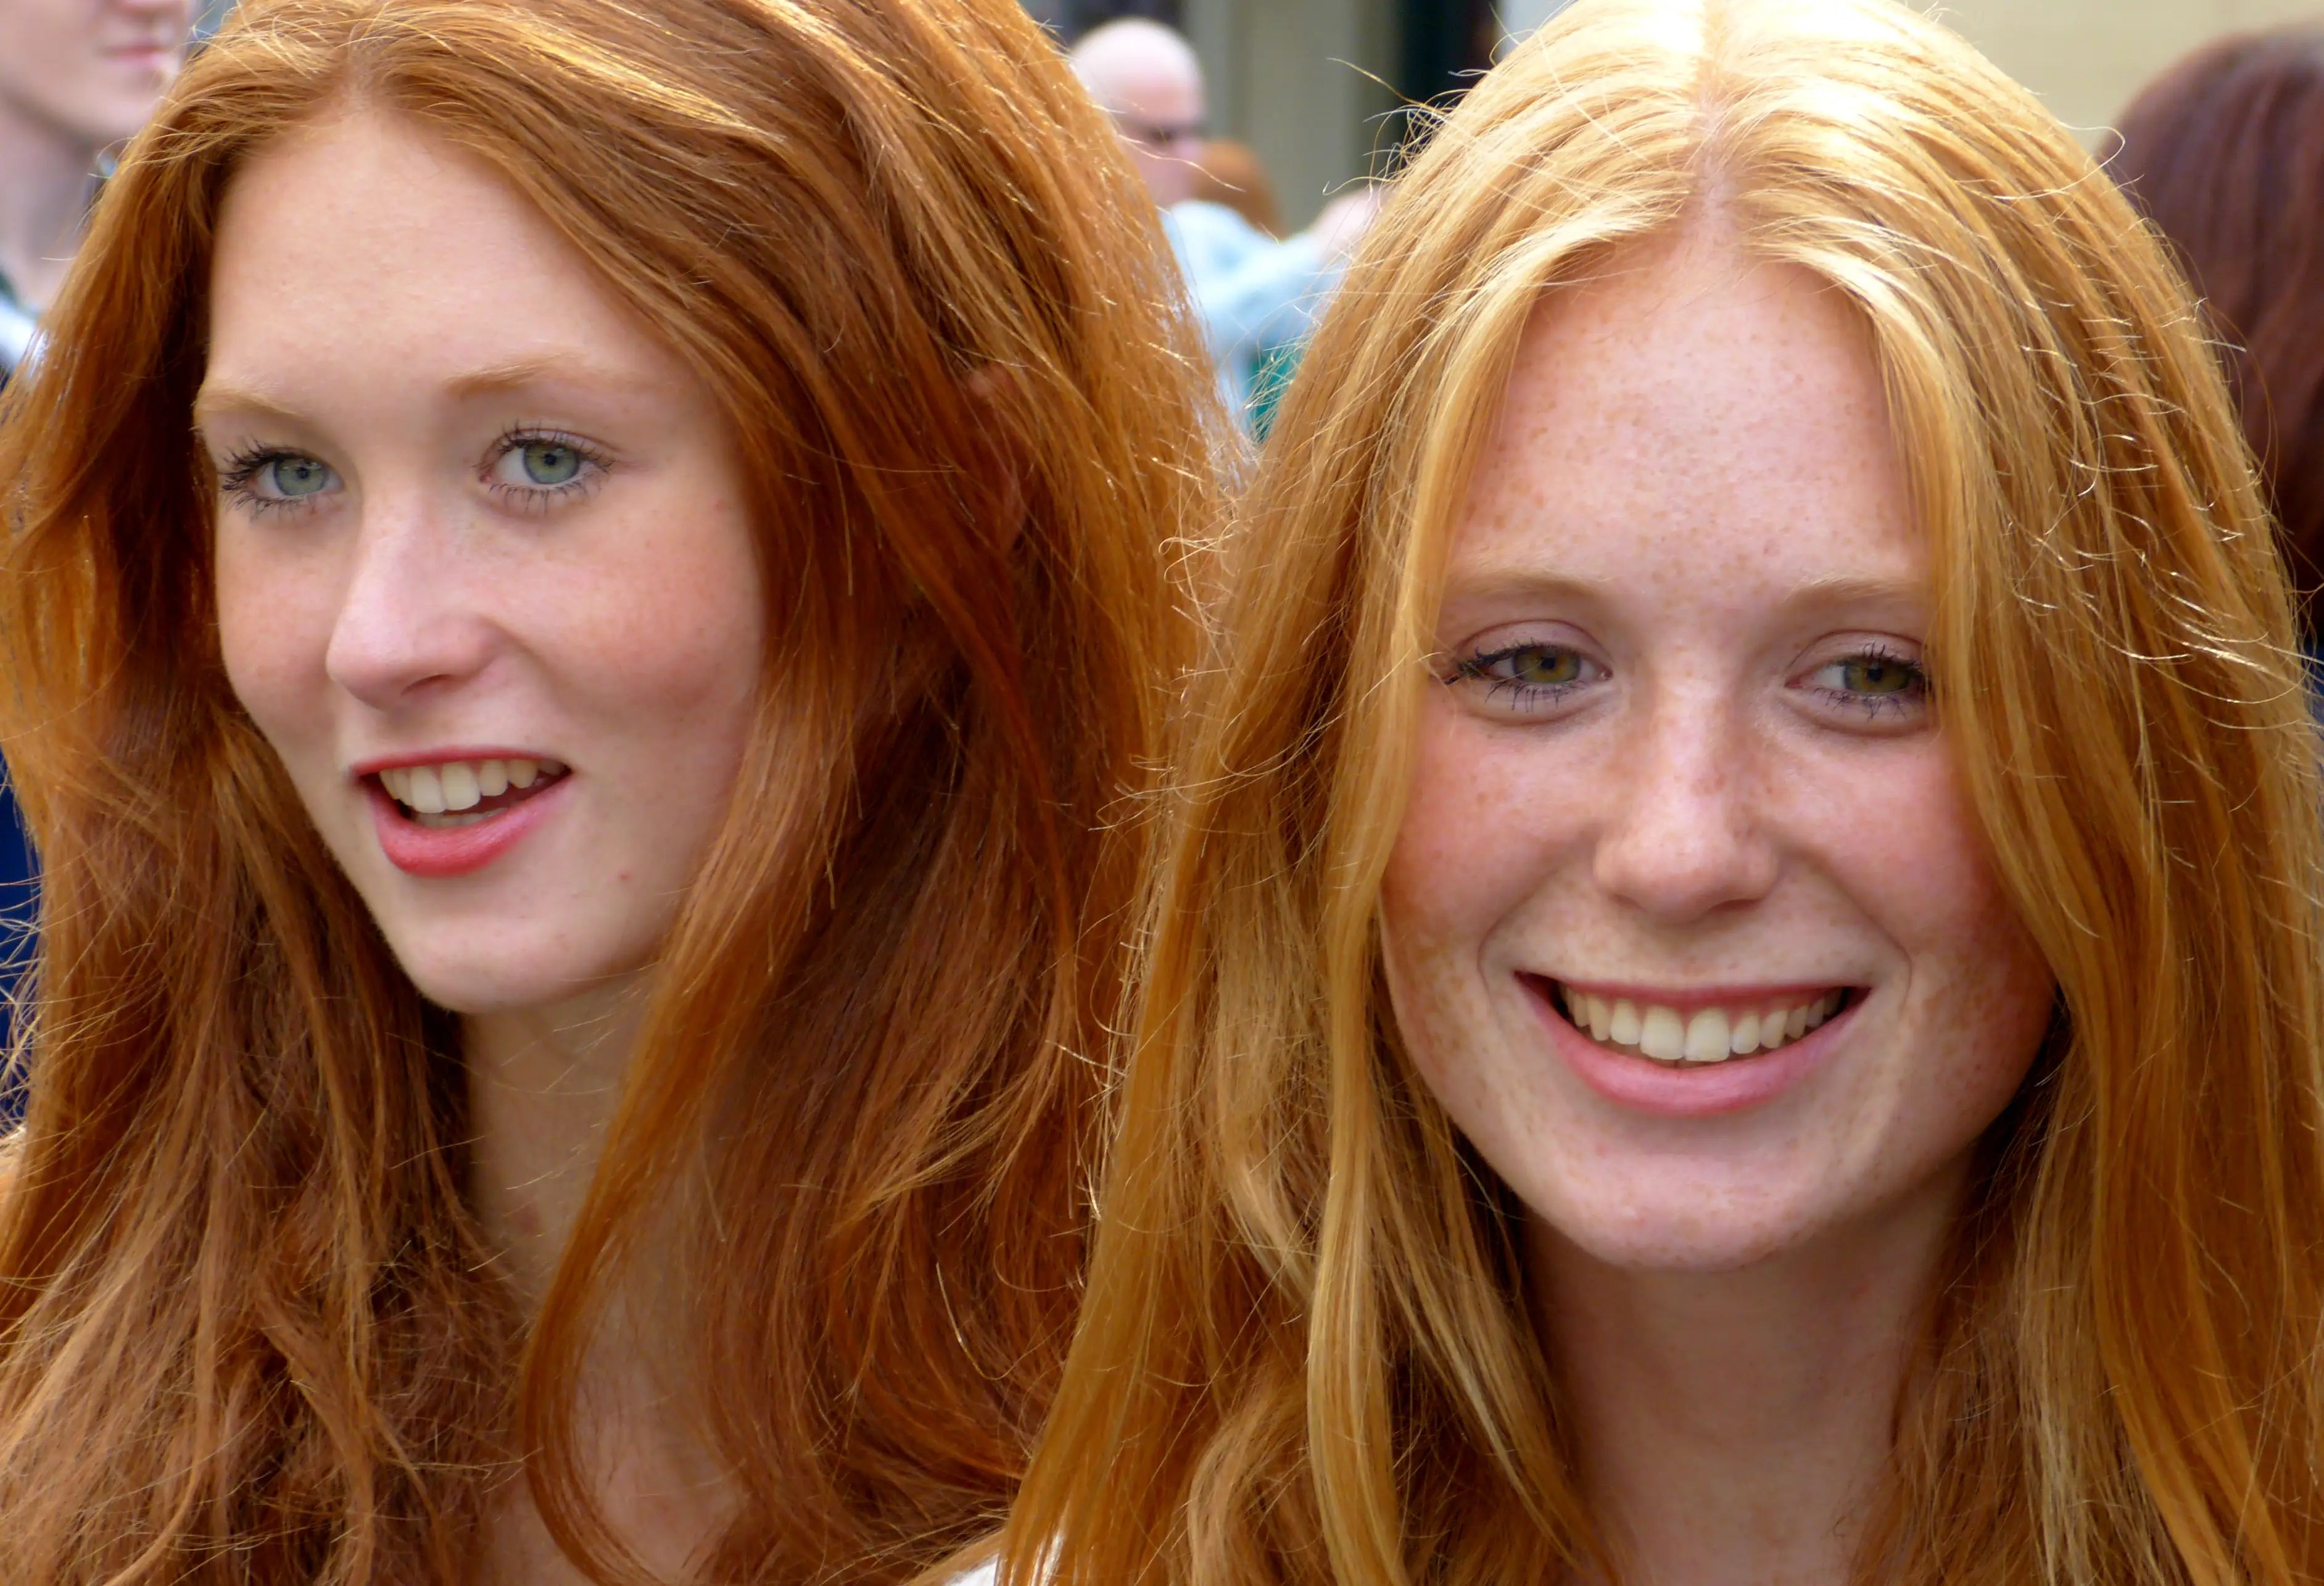 """Blondes and redheads are not """"going extinct."""" Genes do not go extinct. Recessive genes, like the gene for red or blonde hair color, can be carried from generation to generation without emerging as a hair color."""